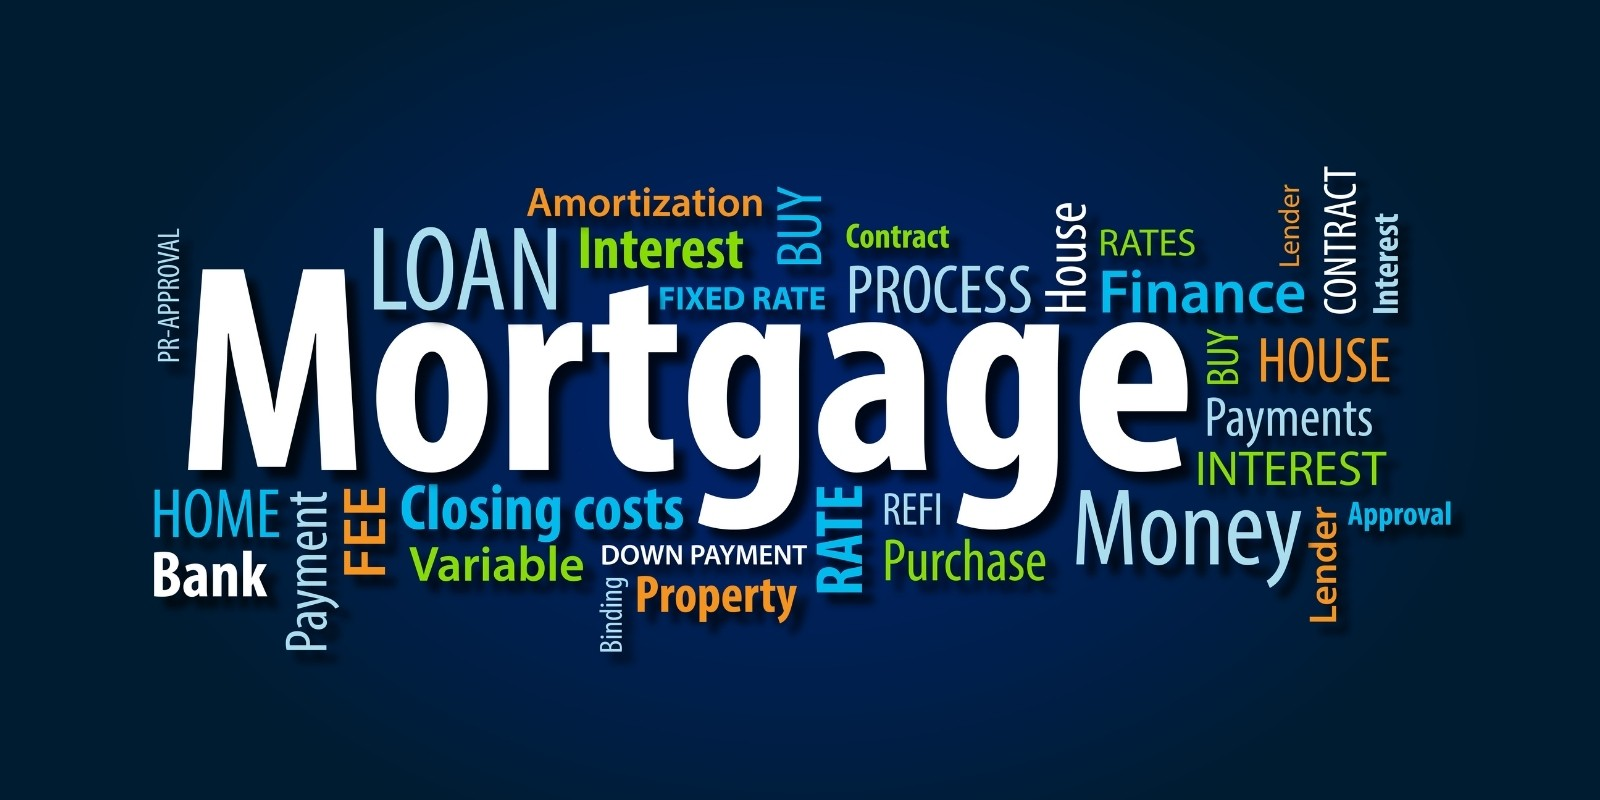 Final Thoughts on Mortgage Pre-Qualification vs. Pre-Approval